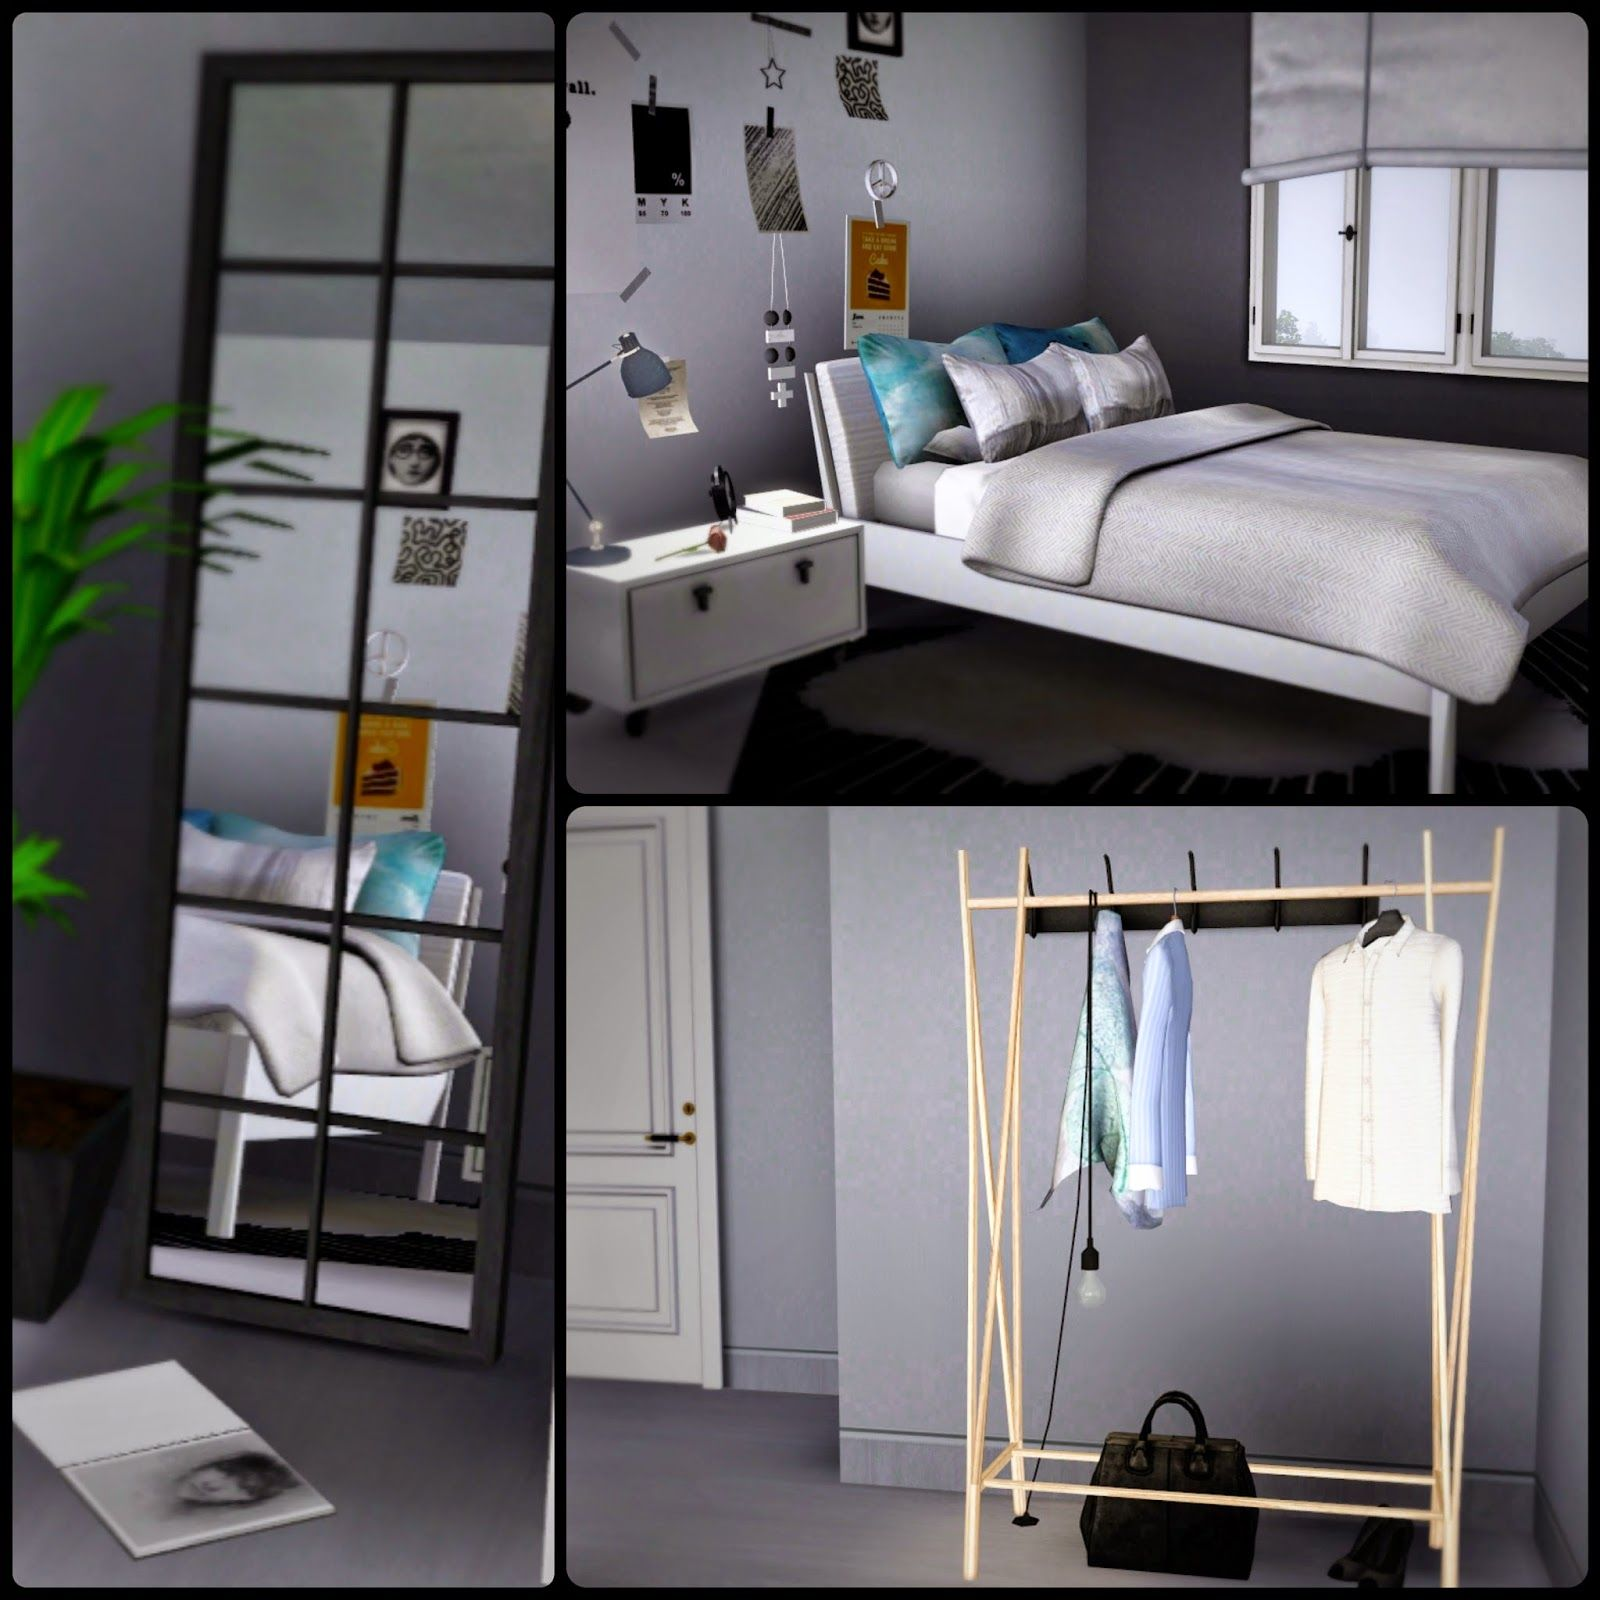 Sims 3 Bedroom Apartment 7b By Simberry Sims 3 Download Starter Home